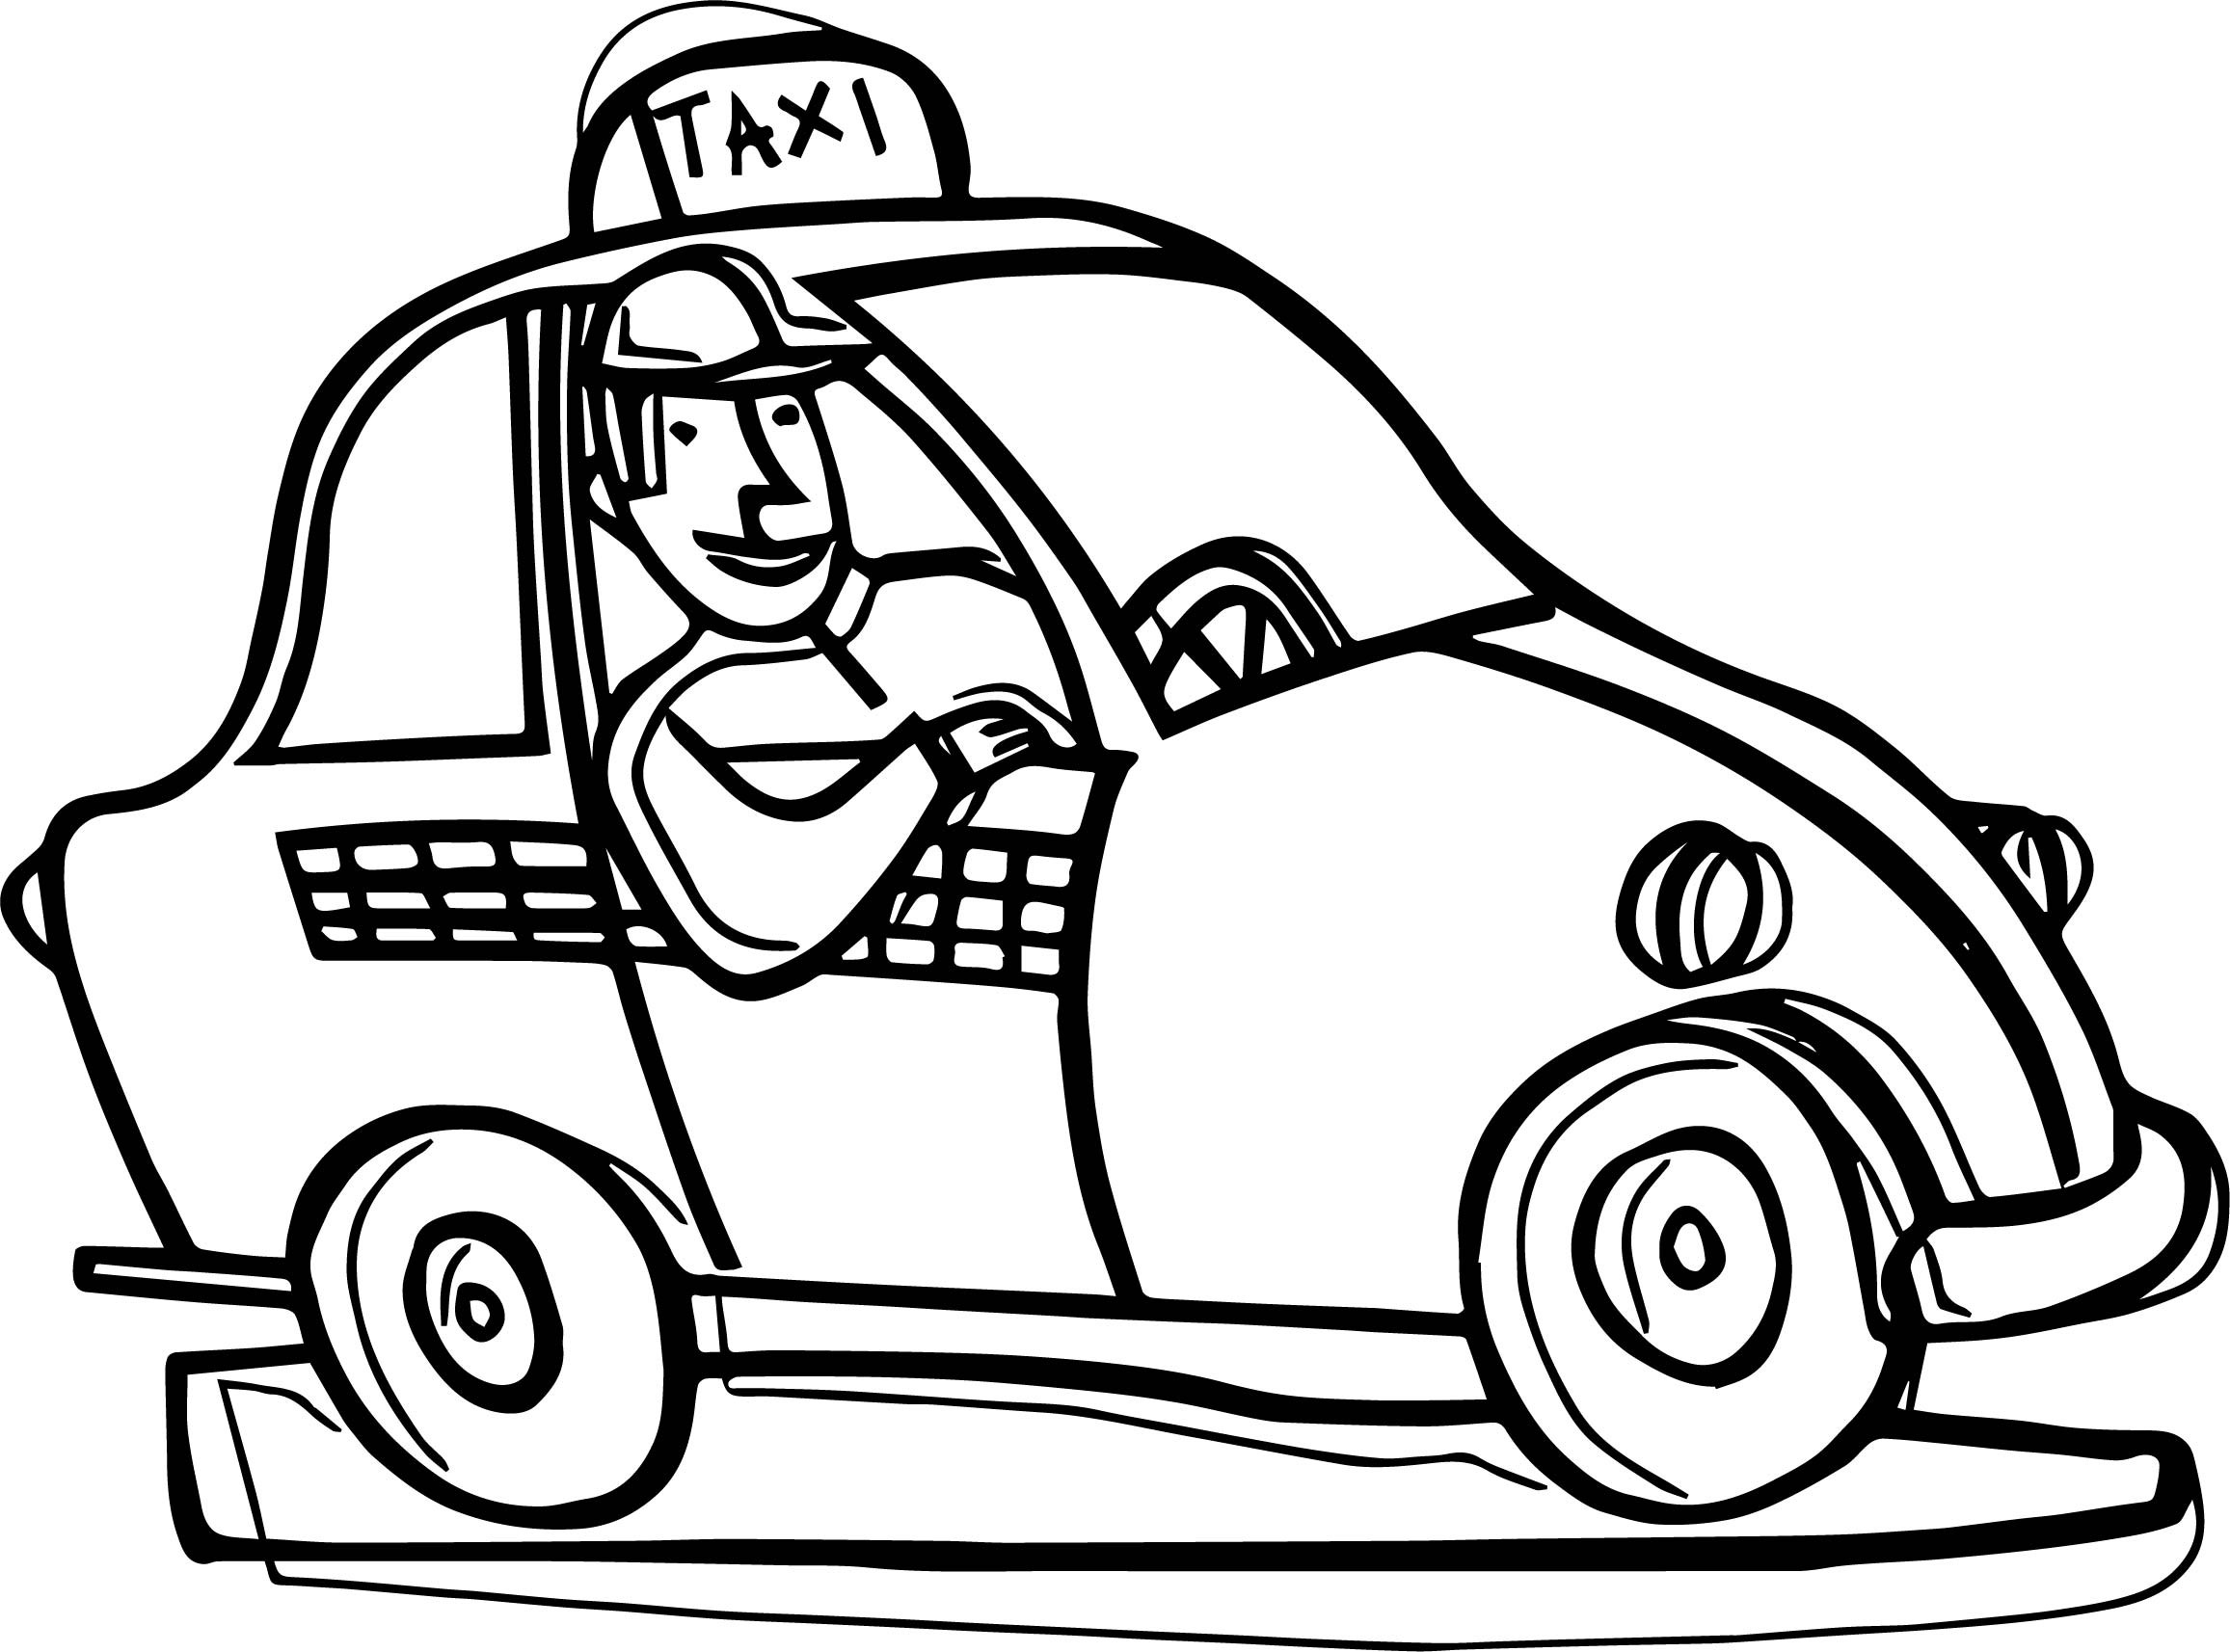 Taxi Coloring Page At Getcolorings